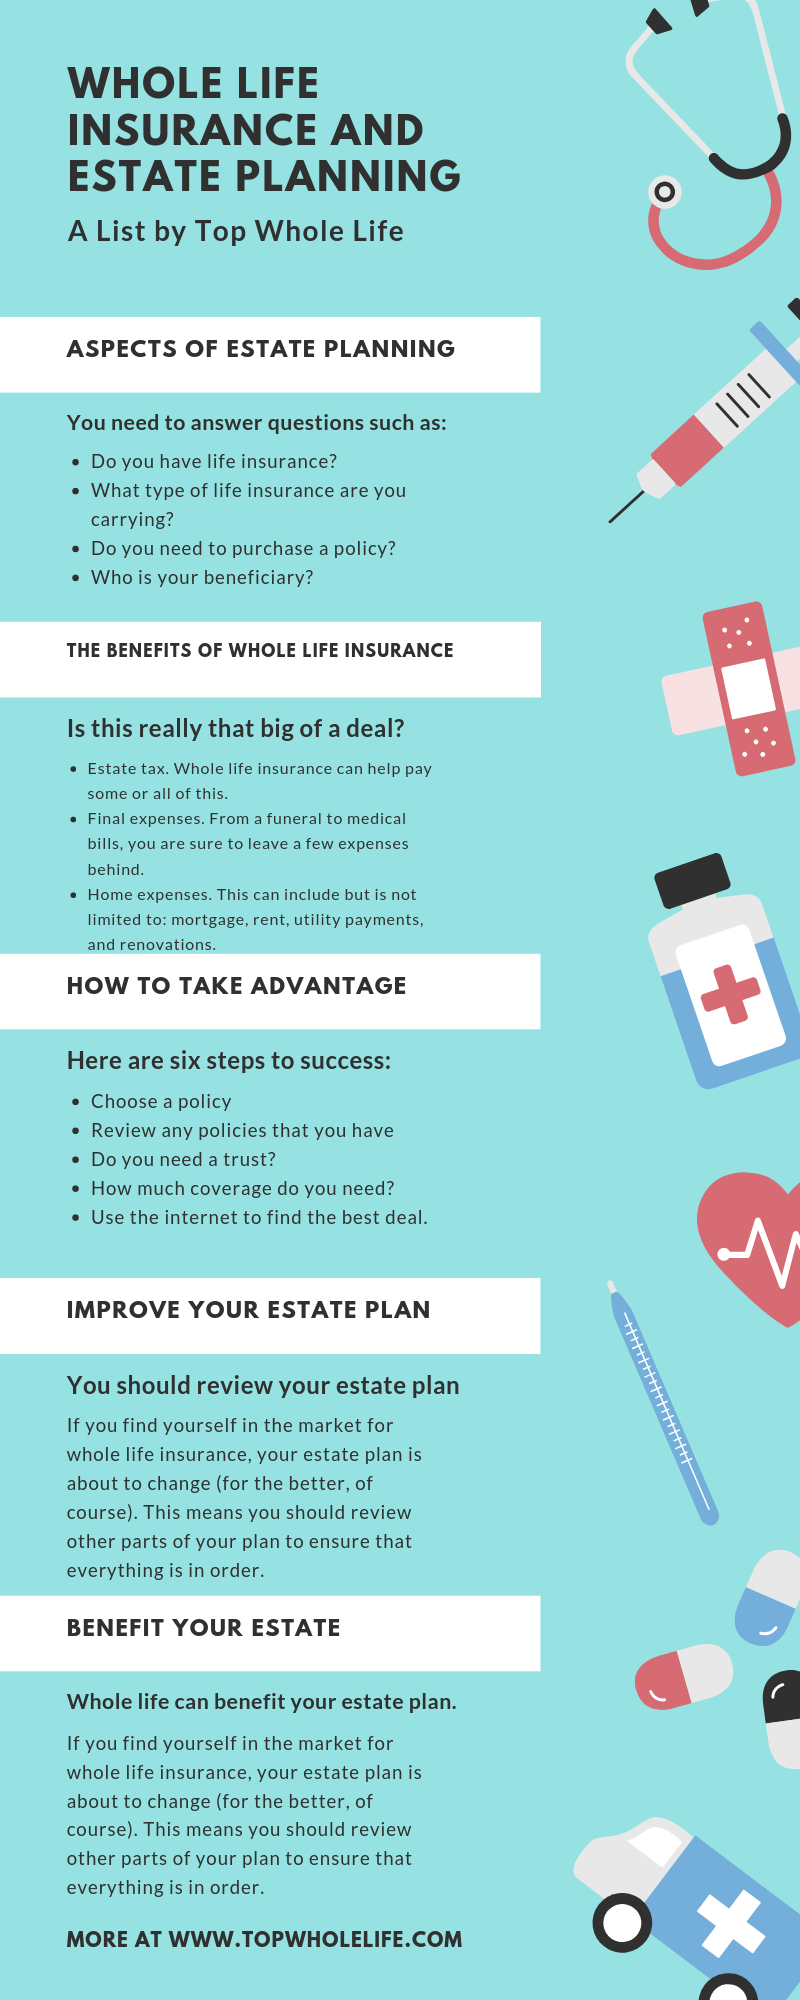 Whole Life Insurance Estate Planning Whole Life Insurance Life Insurance Premium Estate Planning